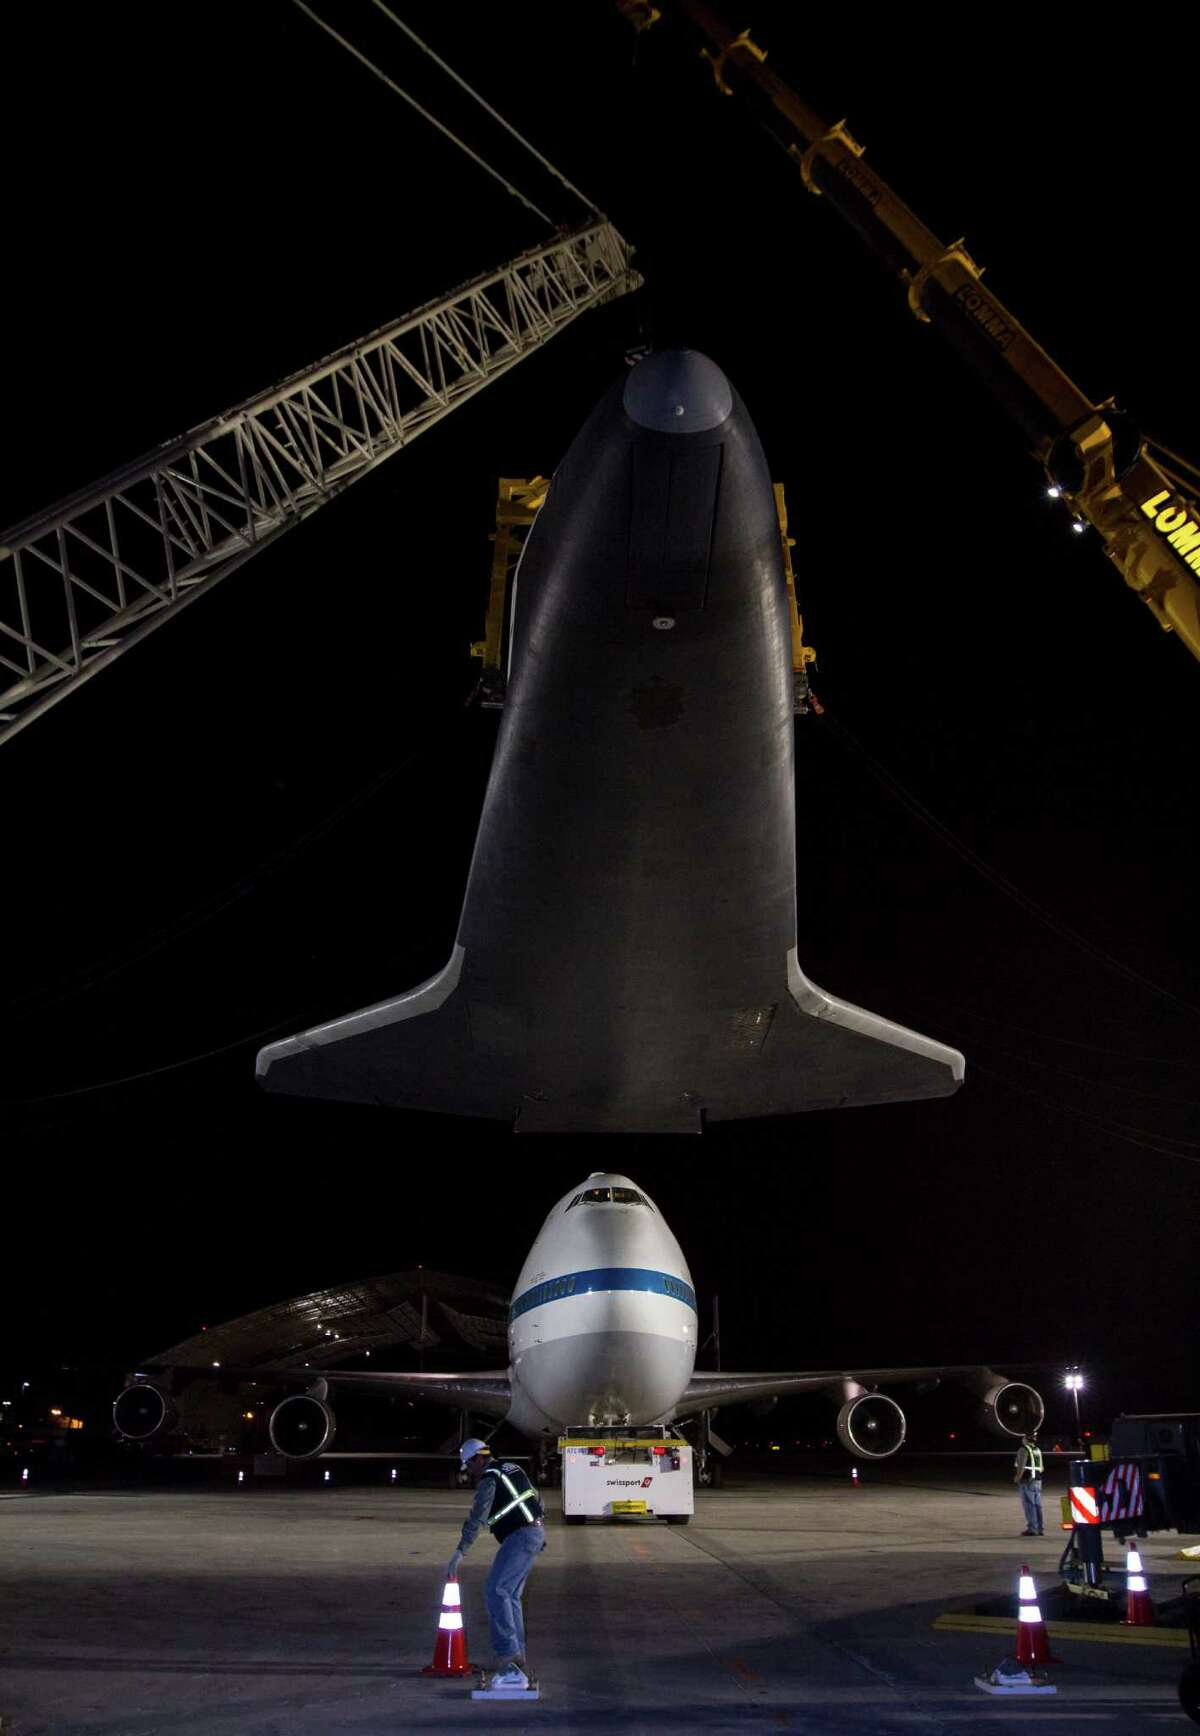 In this photo provided by NASA, space shuttle Enterprise is held aloft by a yellow sling and a set of cranes after it was removed from the top of NASA's 747 Shuttle Carrier Aircraft early Sunday morning, May 13, 2012 at John F. Kennedy International Airport in New York. The 747 was towed backwards so that Enterprise could be lowered. The shuttle will be placed on a barge that will move by tugboat up the Hudson River to the Intrepid Sea, Air & Space Museum in June. The shuttle will be lifted by crane and placed on the flight deck of the Intrepid, where it will be on exhibit to the public starting this summer in a temporary climate-controlled pavilion. (AP Photo/NASA, Kim Shiflet) MANDATORY CREDIT